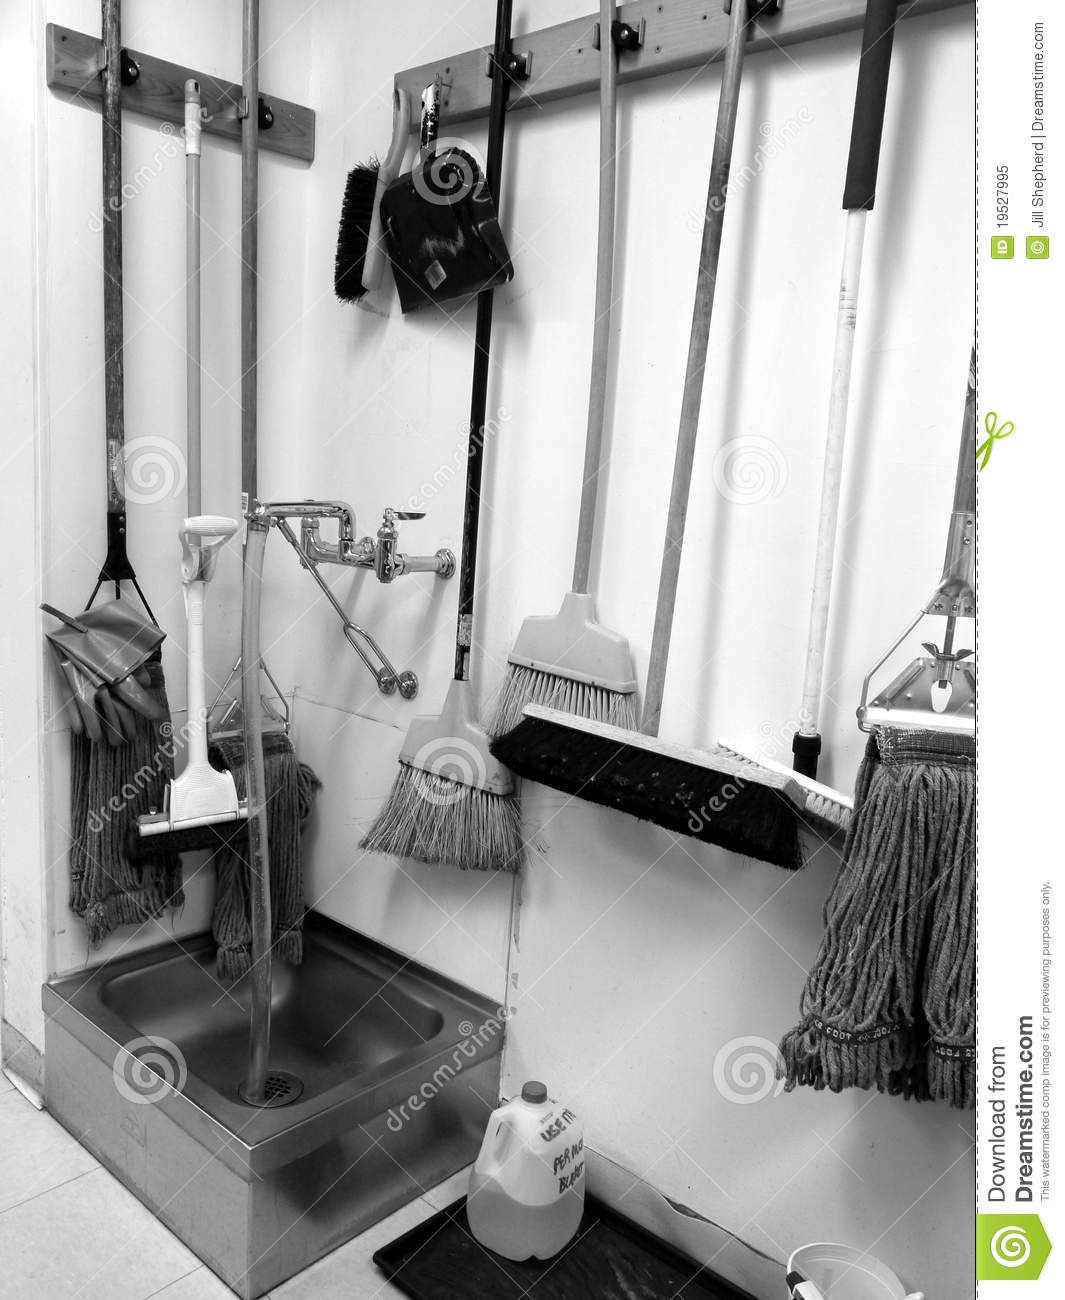 Commercial Cleaning Brooms Mops Sink Royalty Free Stock